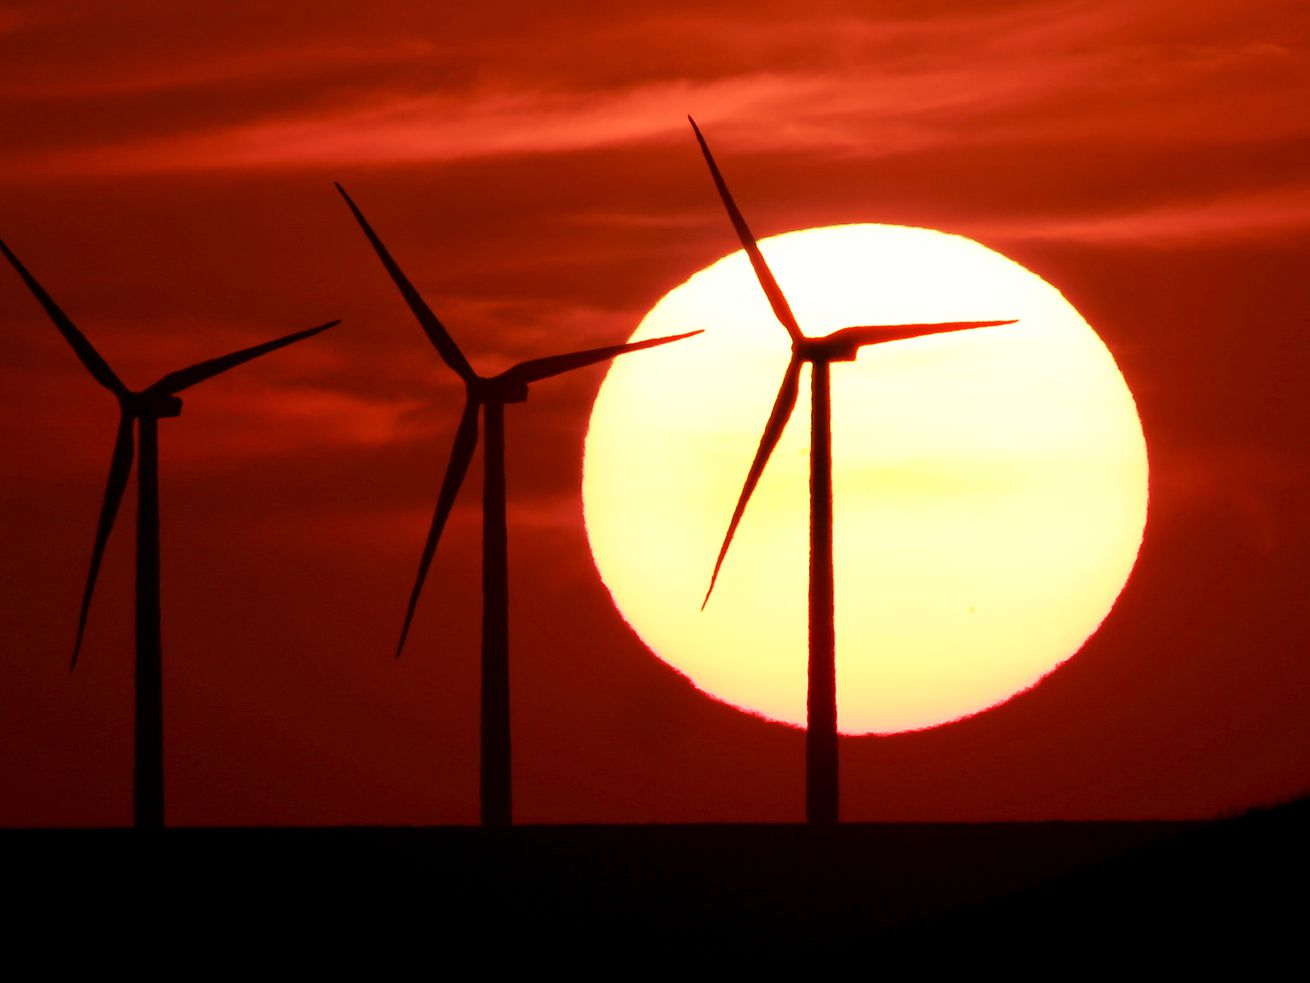 A wind farm silhouetted by a setting sun.